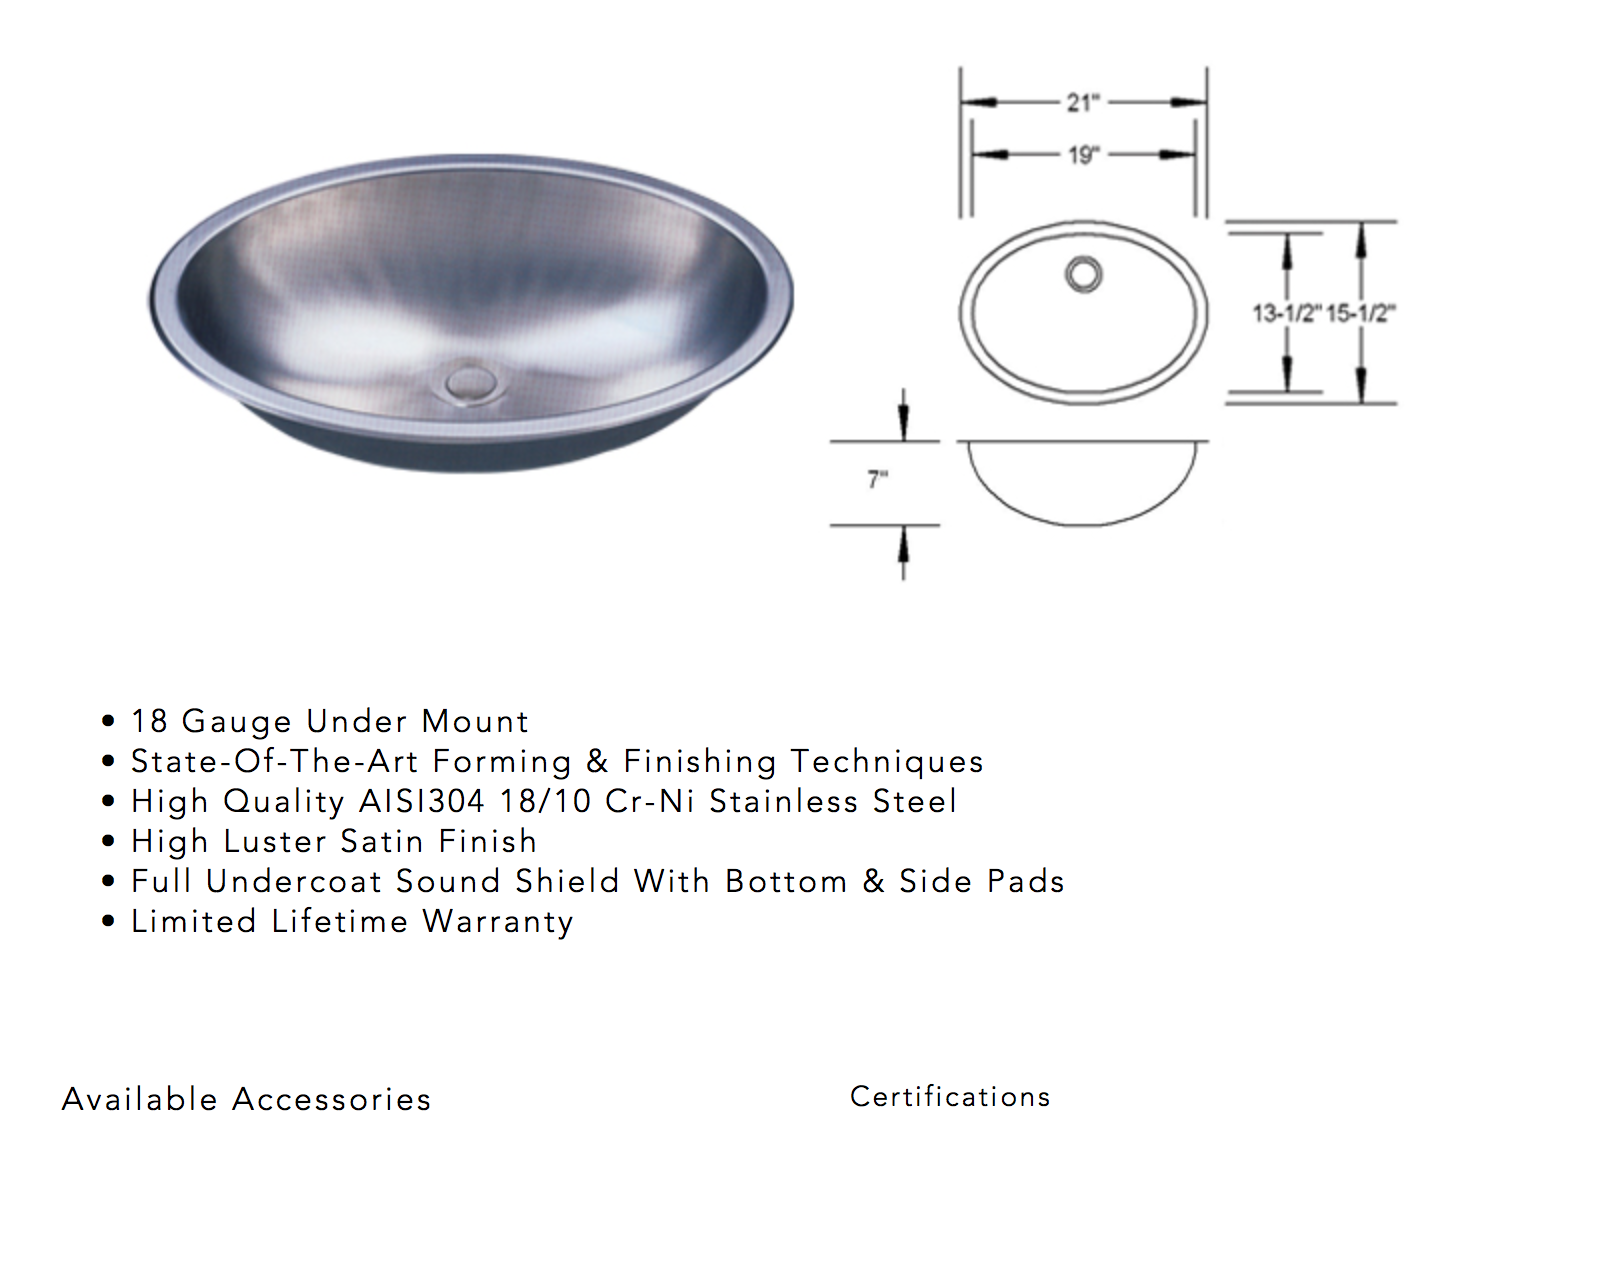 photo of oval stainless steel sink sold by new leaf in tacoma, wa for quartz counter top undermount